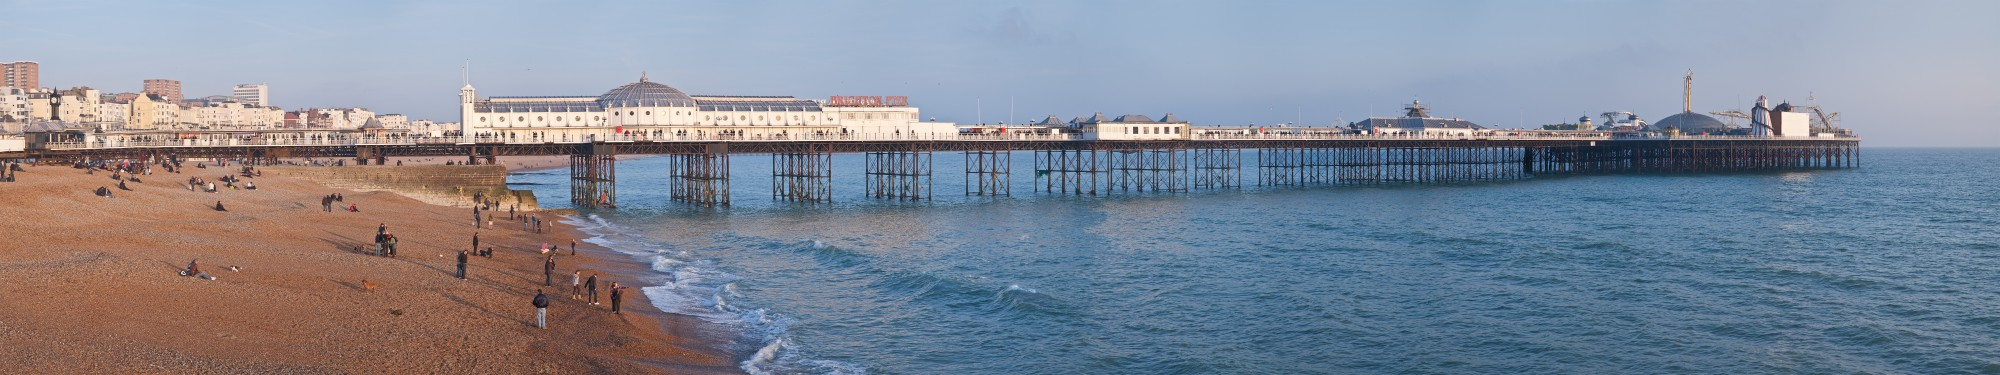 Brighton Pier, England - Feb 2009